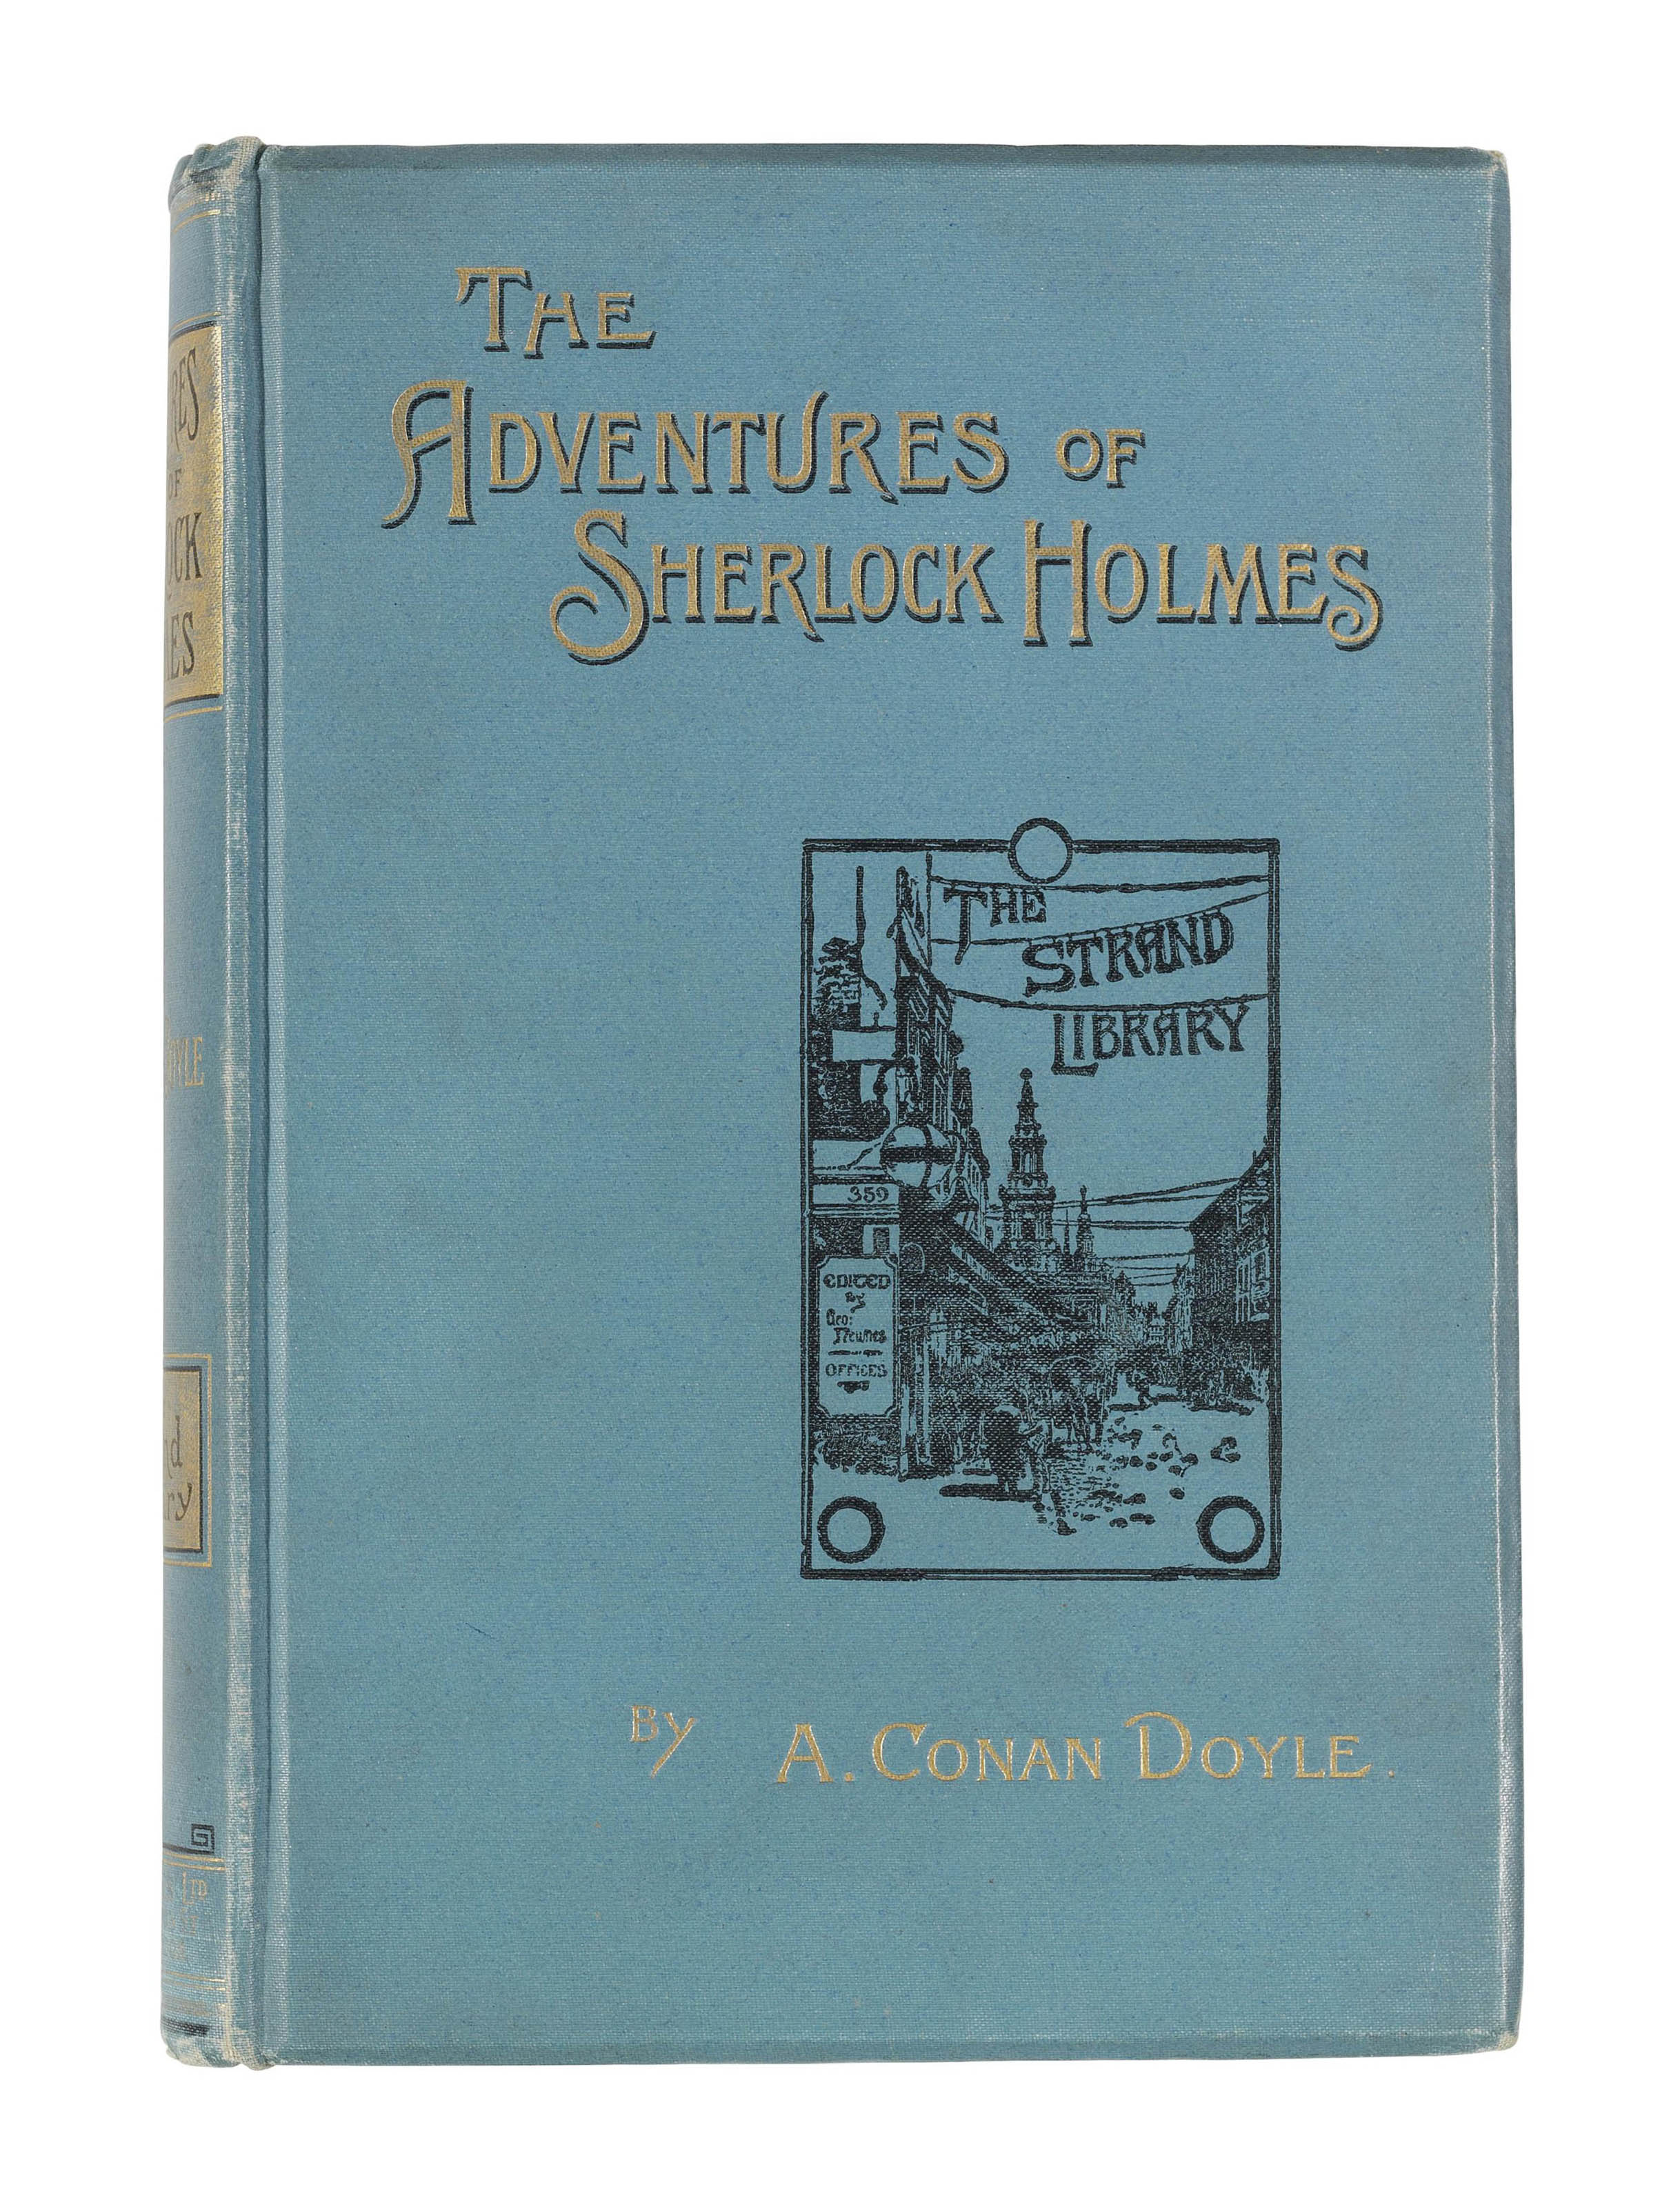 DOYLE, Arthur Conan (1859-1930). The Adventures of Sherlock Holmes. London: George Newnes, 1892. Large 8° (234 x 155mm). Half-title and final blank leaf 218, half tone illustrations after Sidney Paget. (Spotting.) Original light blue pictorial cloth, edges gilt (extremities lightly rubbed, hinges cracked). FIRST EDITION. Green and Gibson, A10.